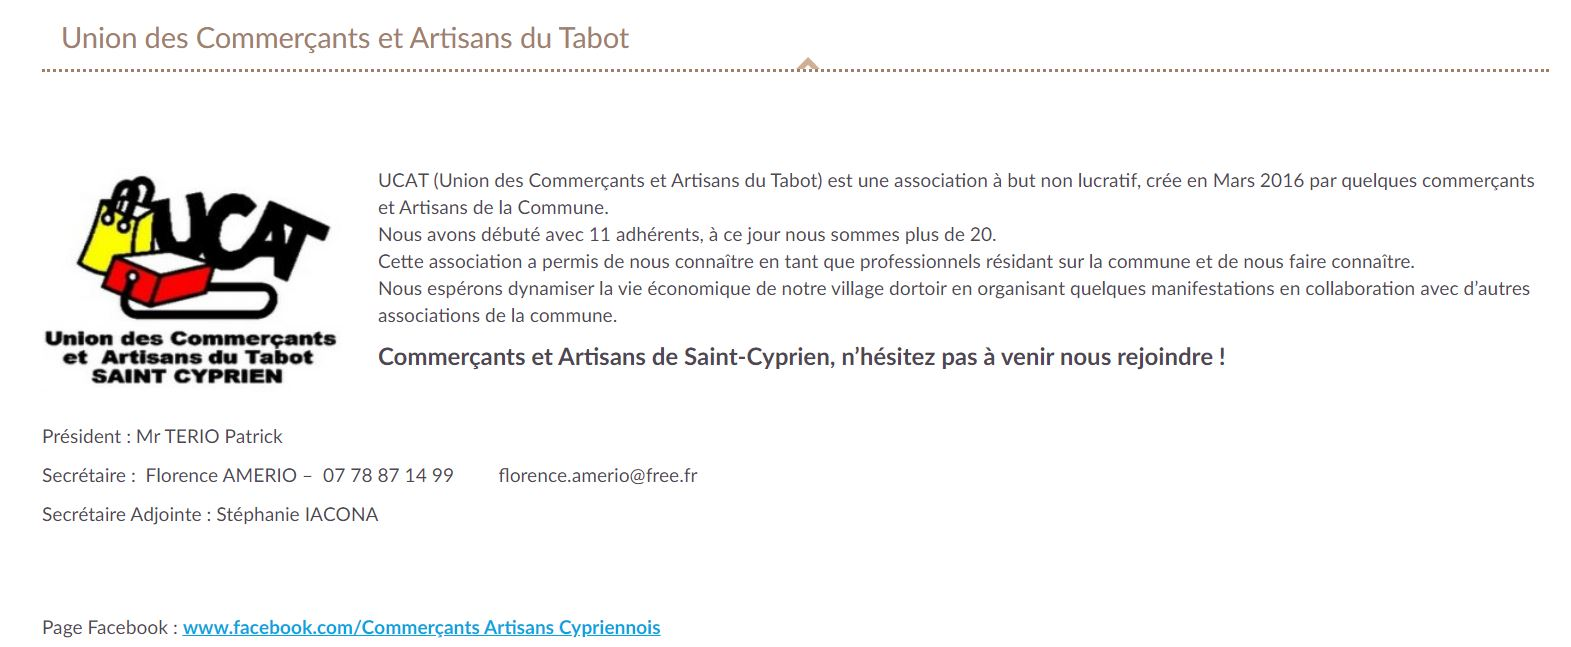 https://www.saintcyprien.fr/union-commercants-et-artisans-du-tabot/